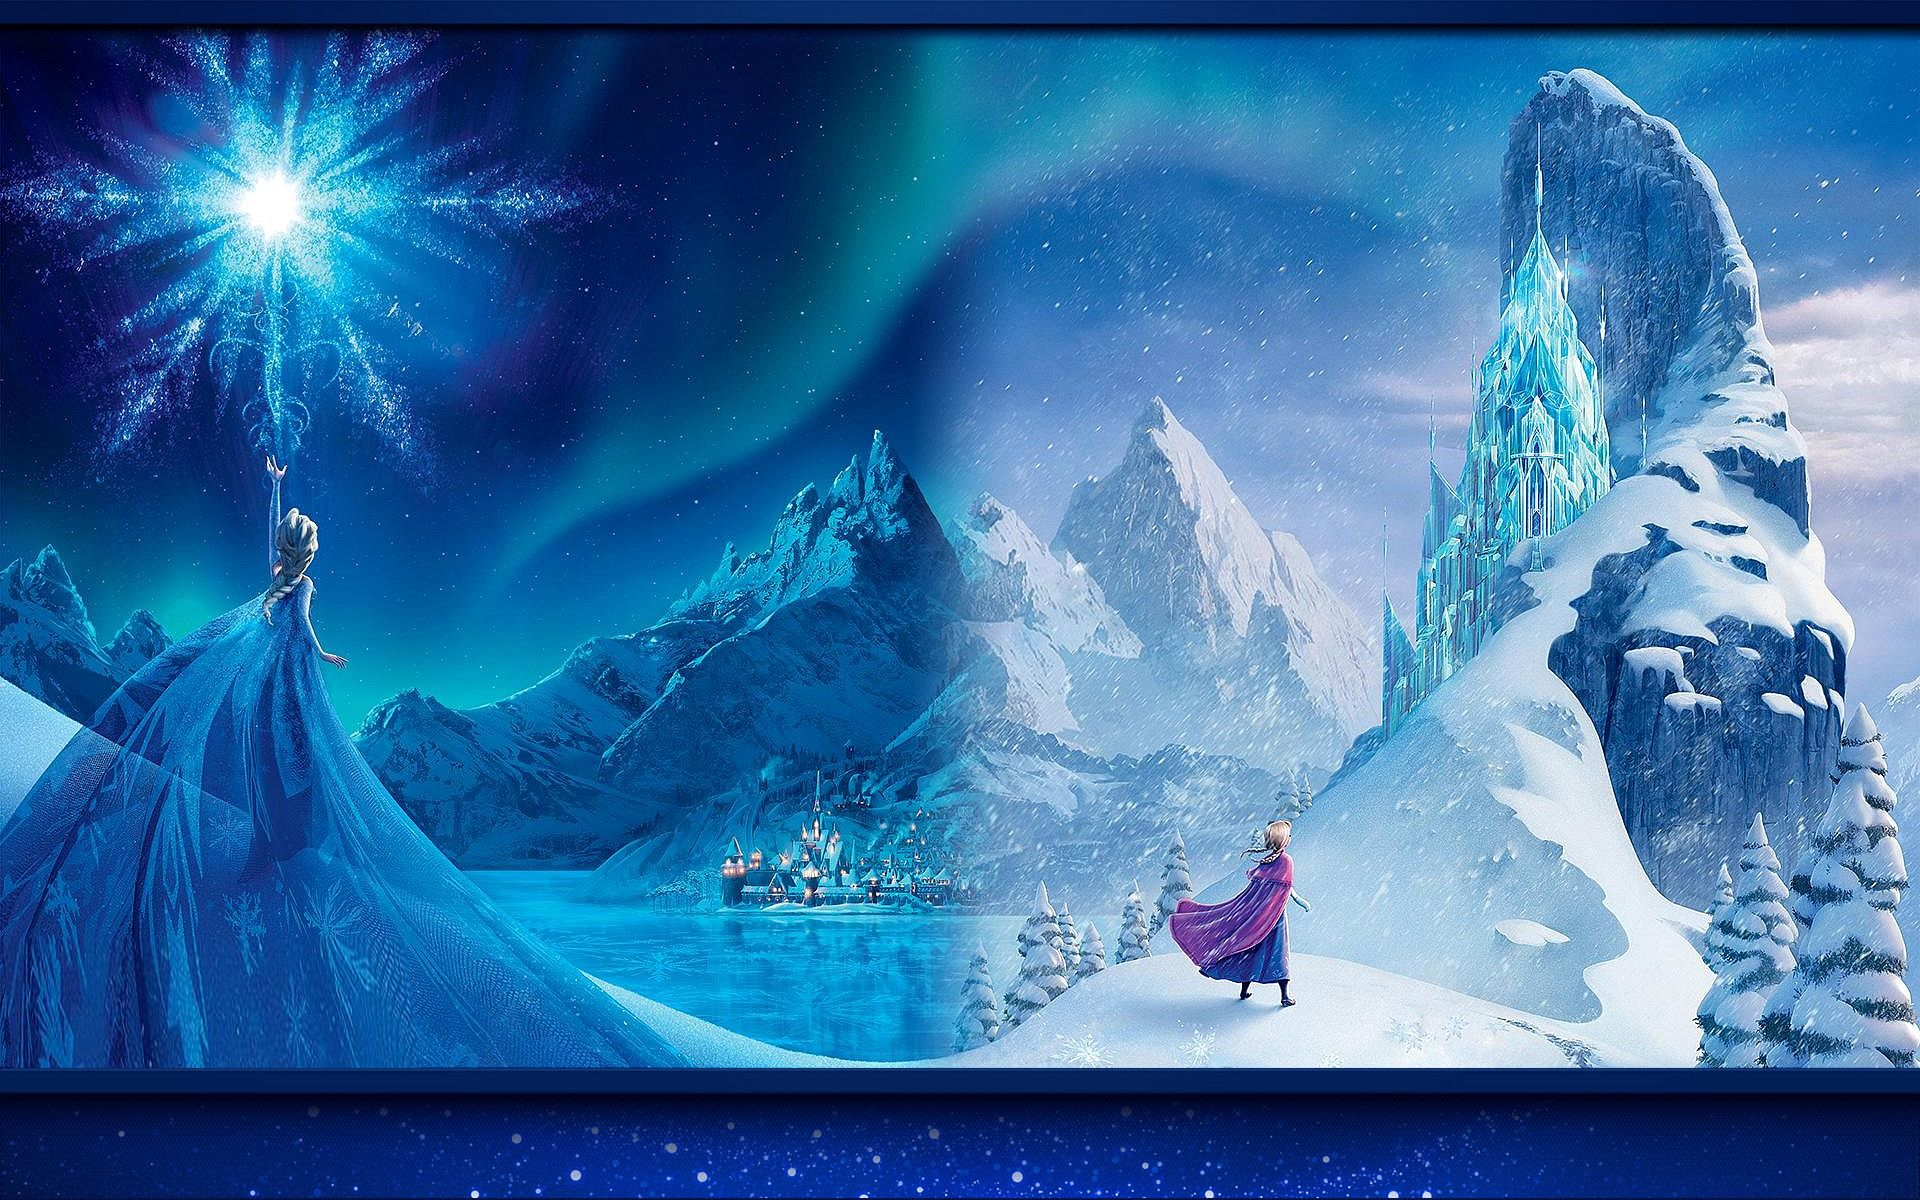 affiche reines des neiges disney fond 1920 1200 fond d 39 ecran pinterest. Black Bedroom Furniture Sets. Home Design Ideas